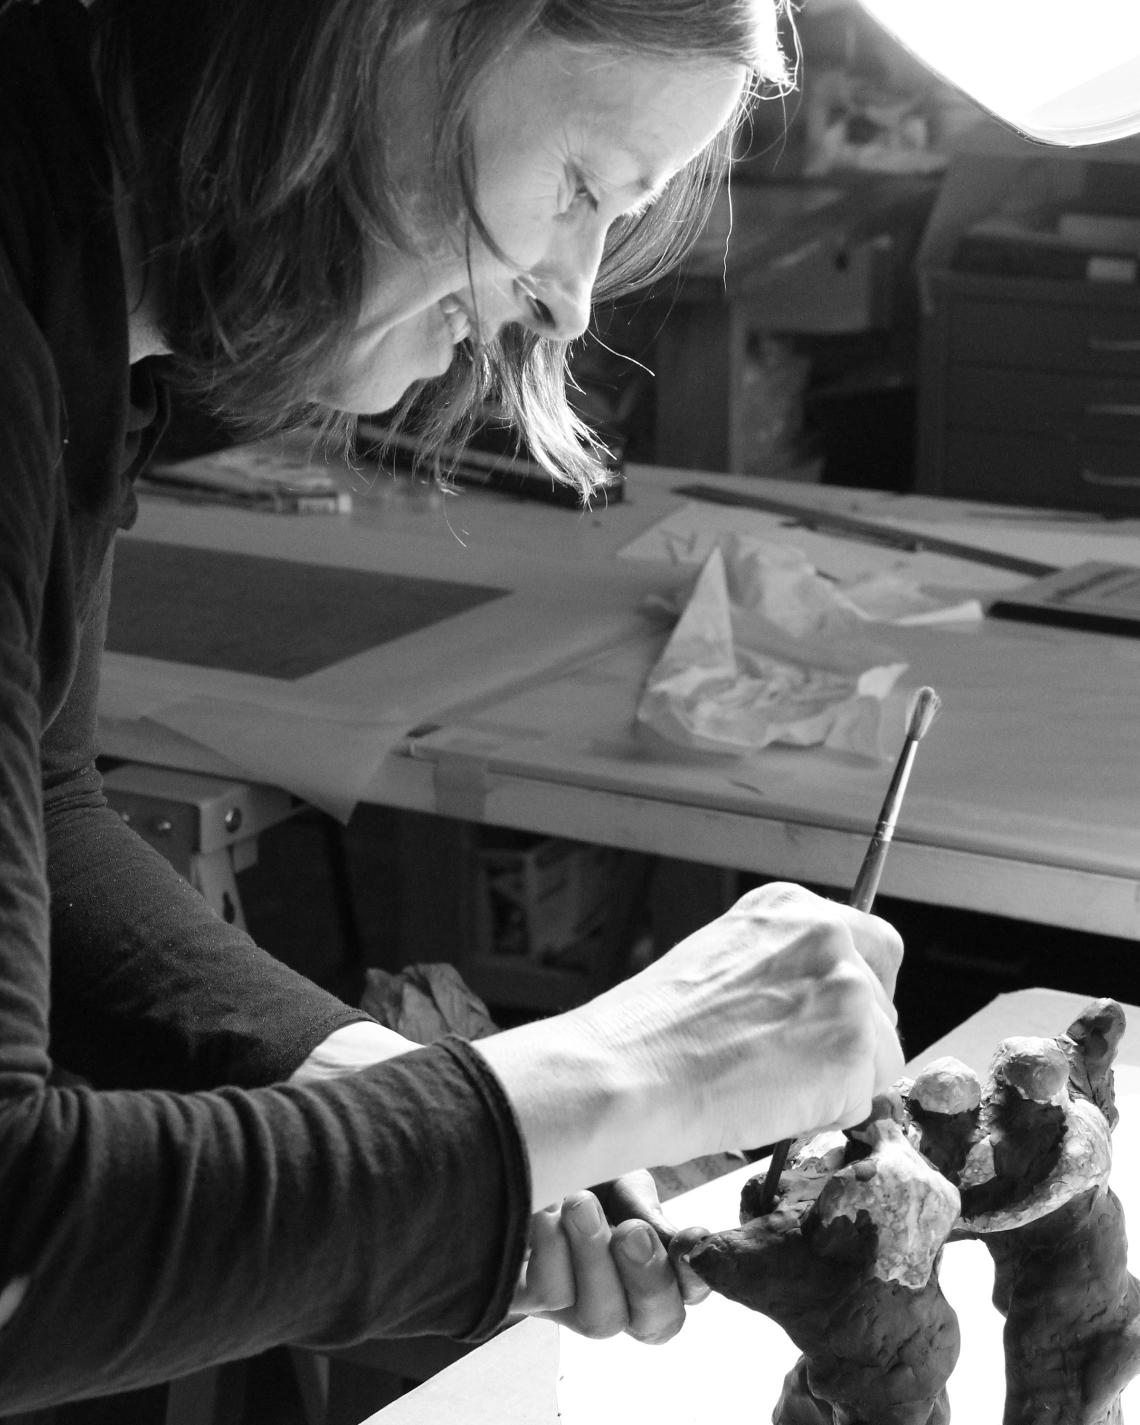 Drawing Workshop with artist Andrea Sulzer